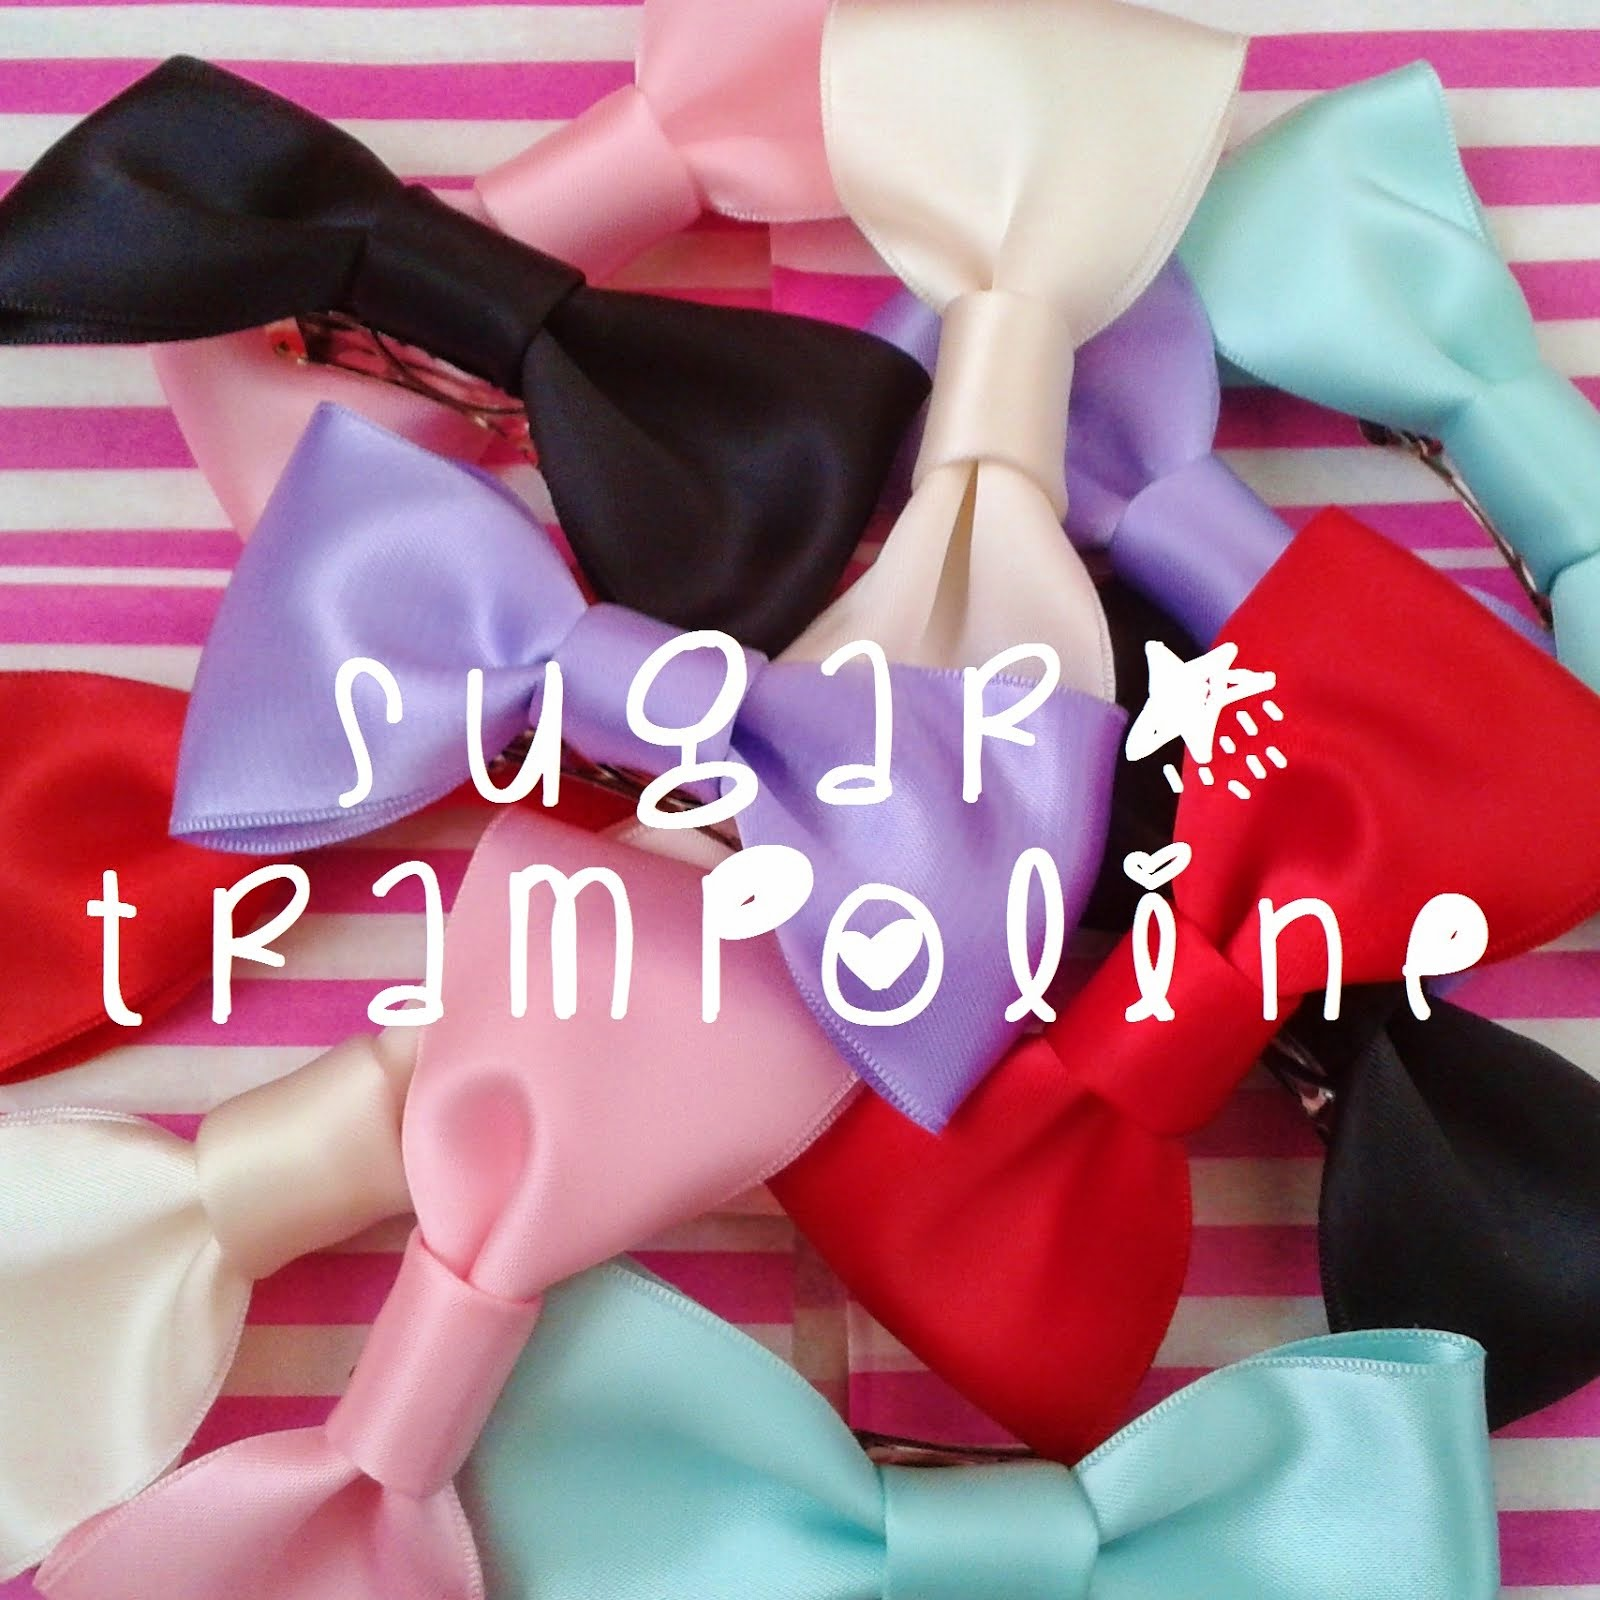 Visit the Sugar Trampoline online shop!